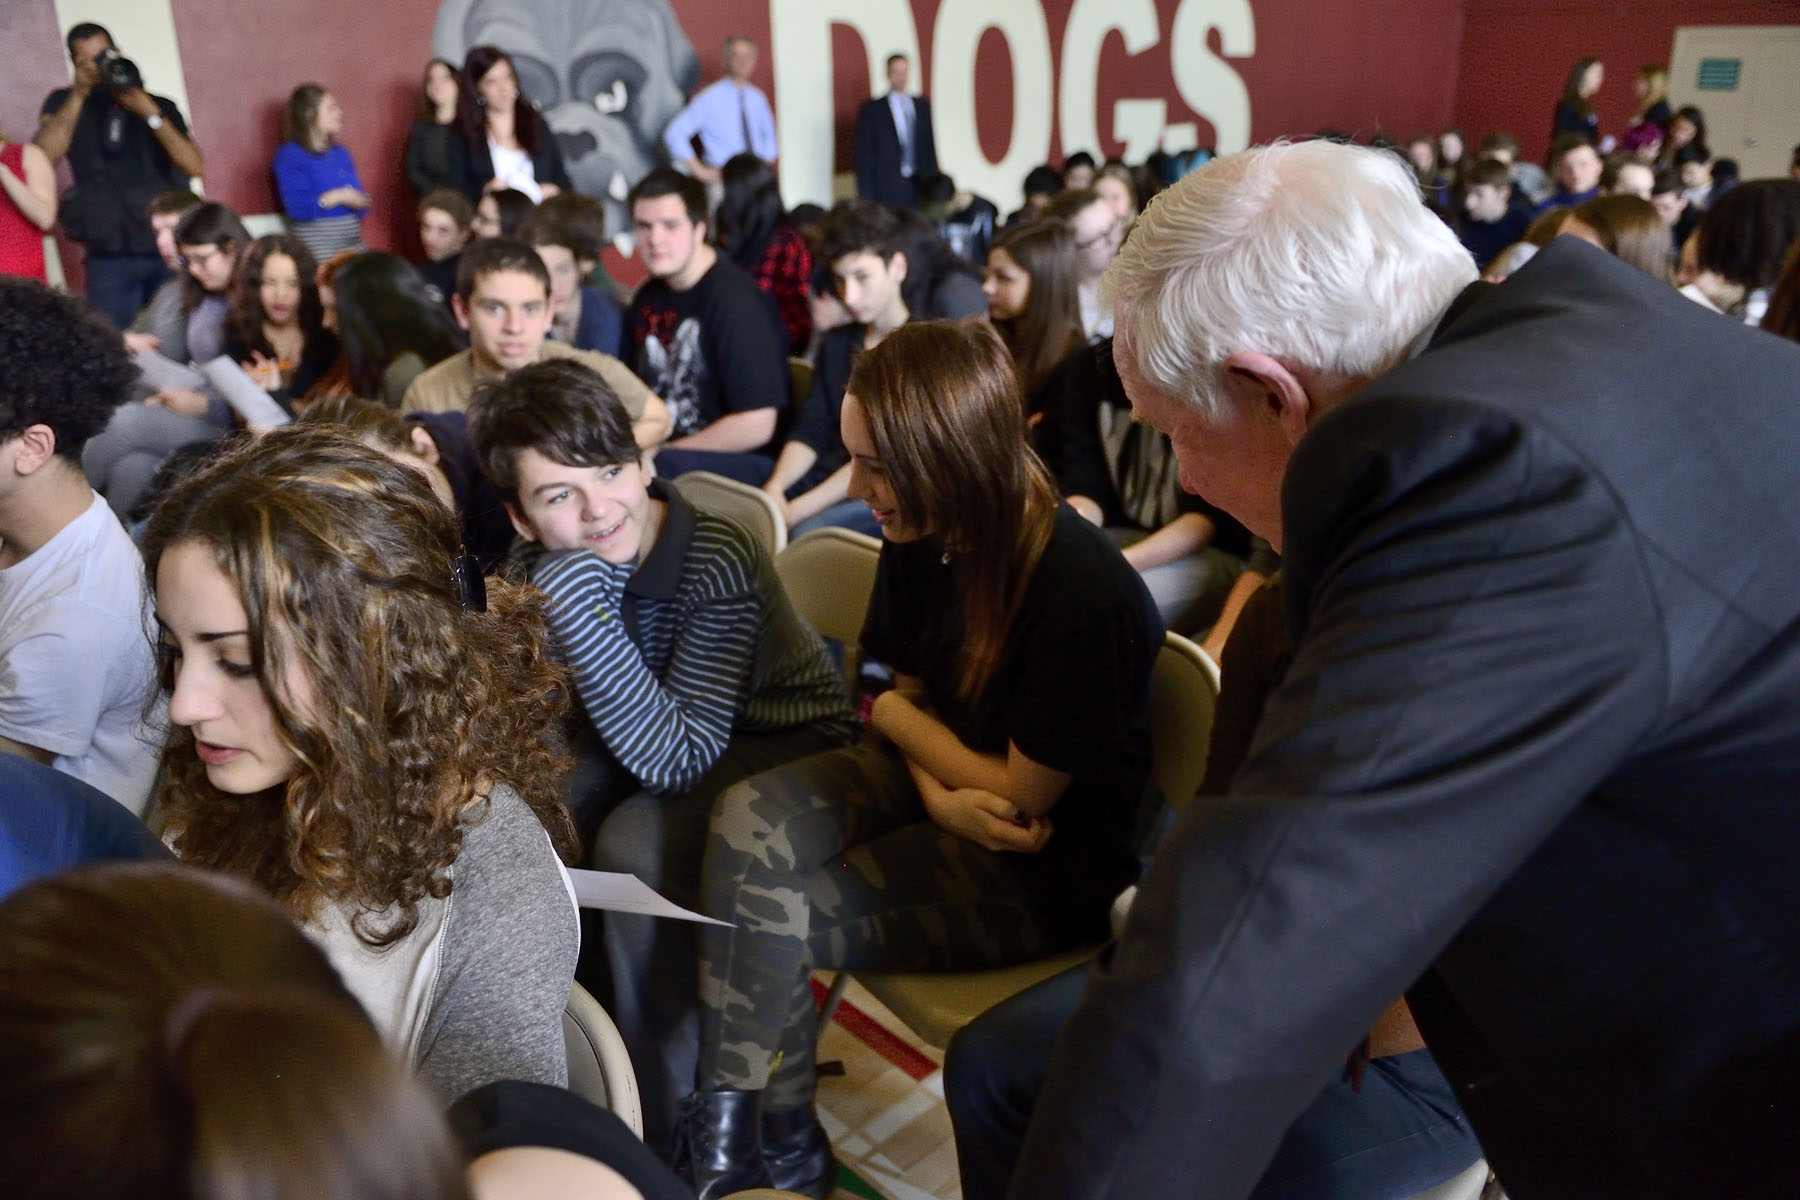 While students developed their ideas for a community event, the Governor General engaged with students to help stimulate discussion.